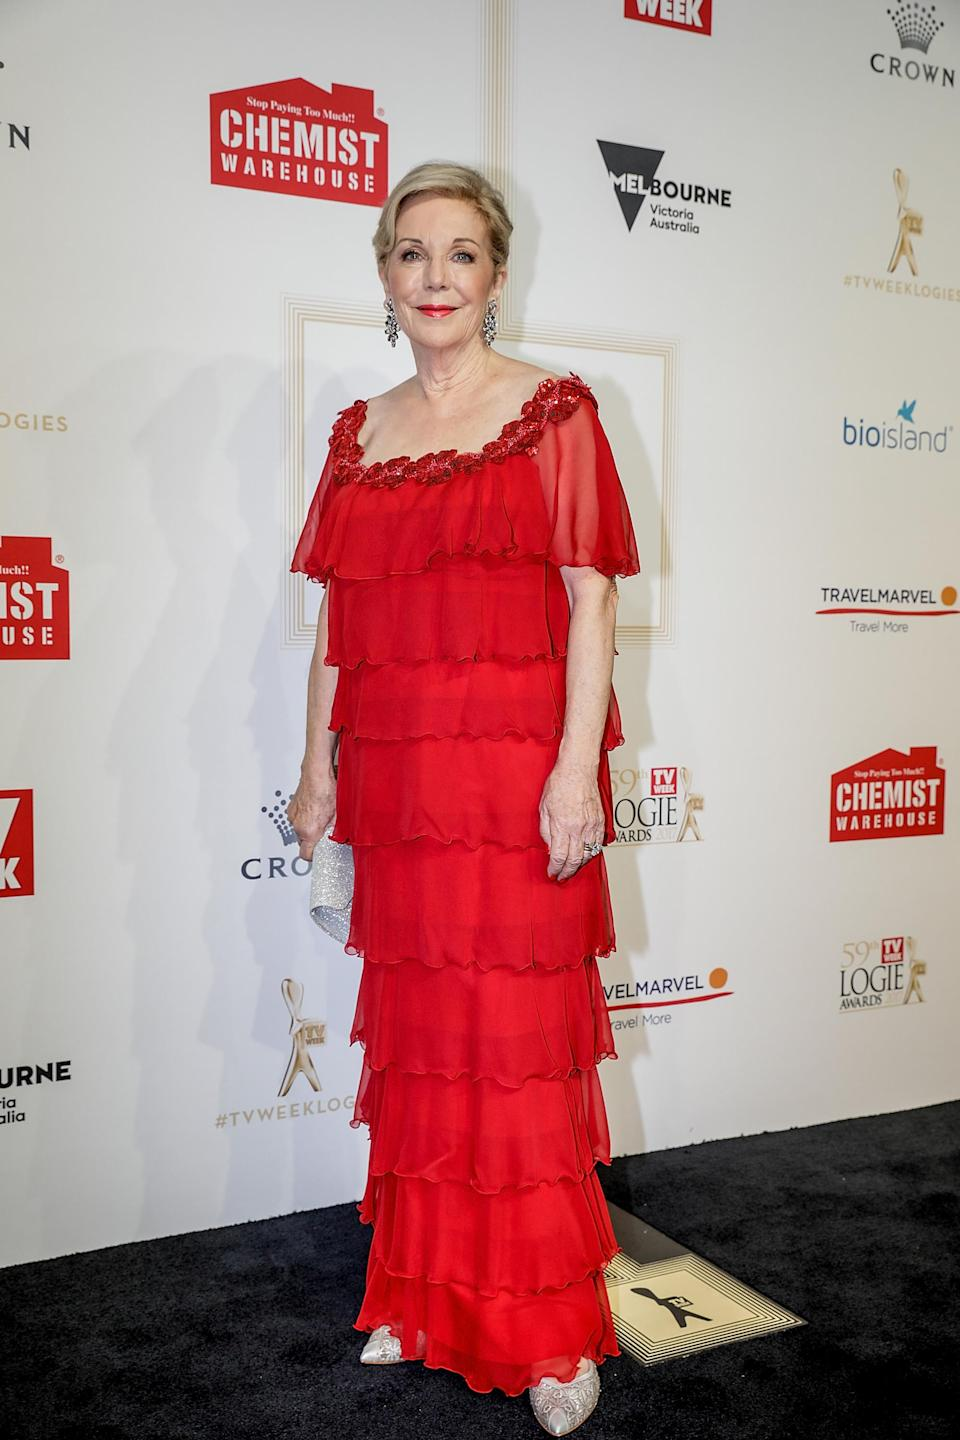 Media legend Ita Buttrose typically favours simple, elegant outfits so her head-to-toe fringed number at the 2017 awards was a bit of a surprise. The fire engine red hue and the boxy shape simply don't do Ita any favours and the whole thing says 'frumpy' rather than 'flapper.' Source: Getty